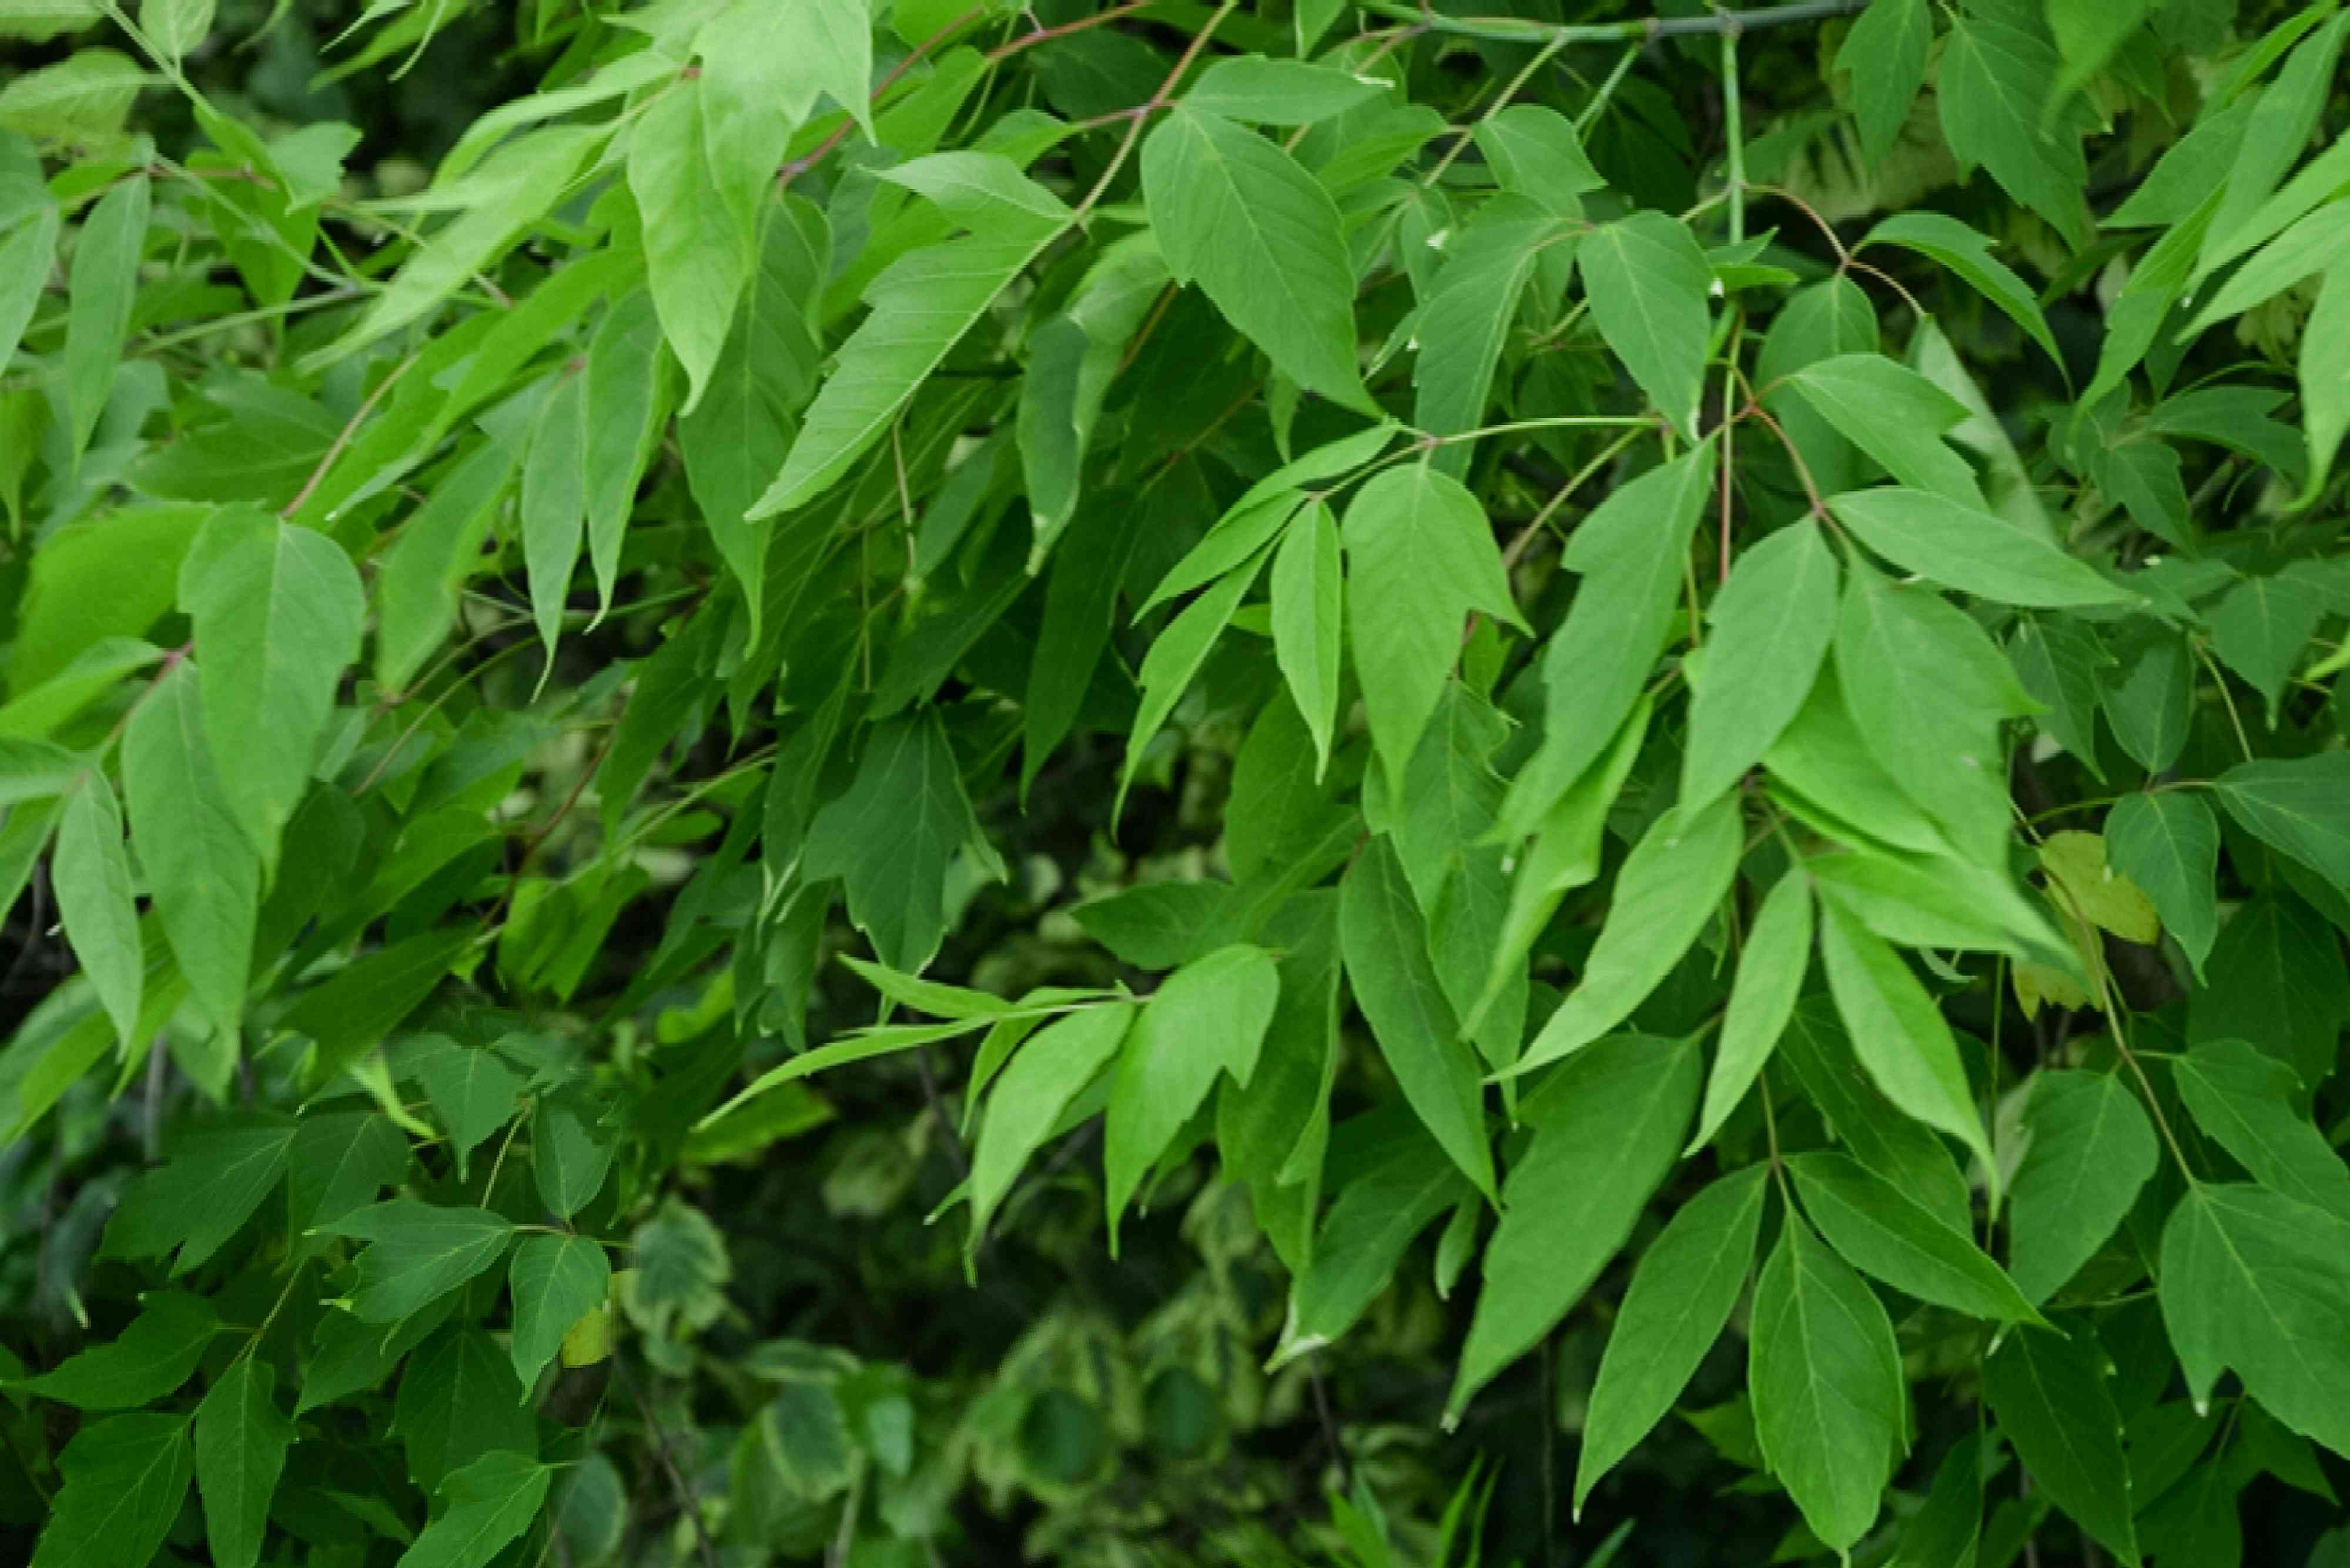 Boxelder tree branches with bright green leaves with irregular toothed edges